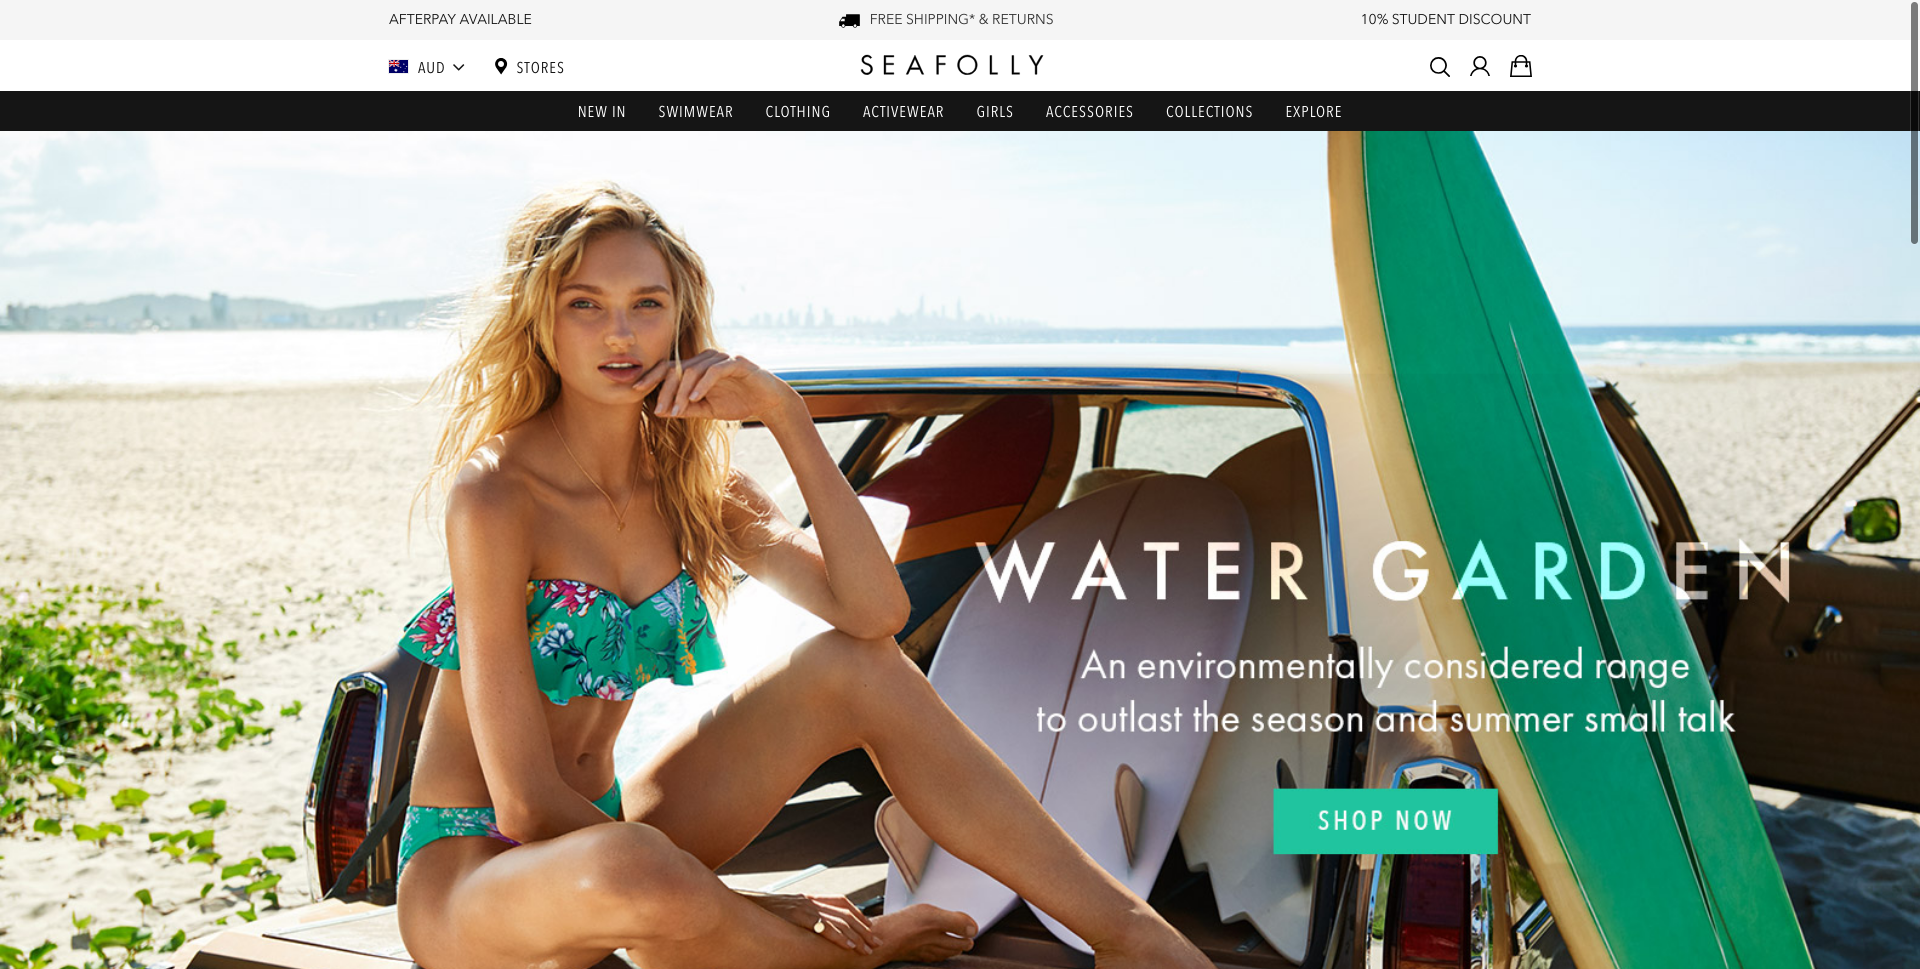 seafolly-swimwear-website.jpg